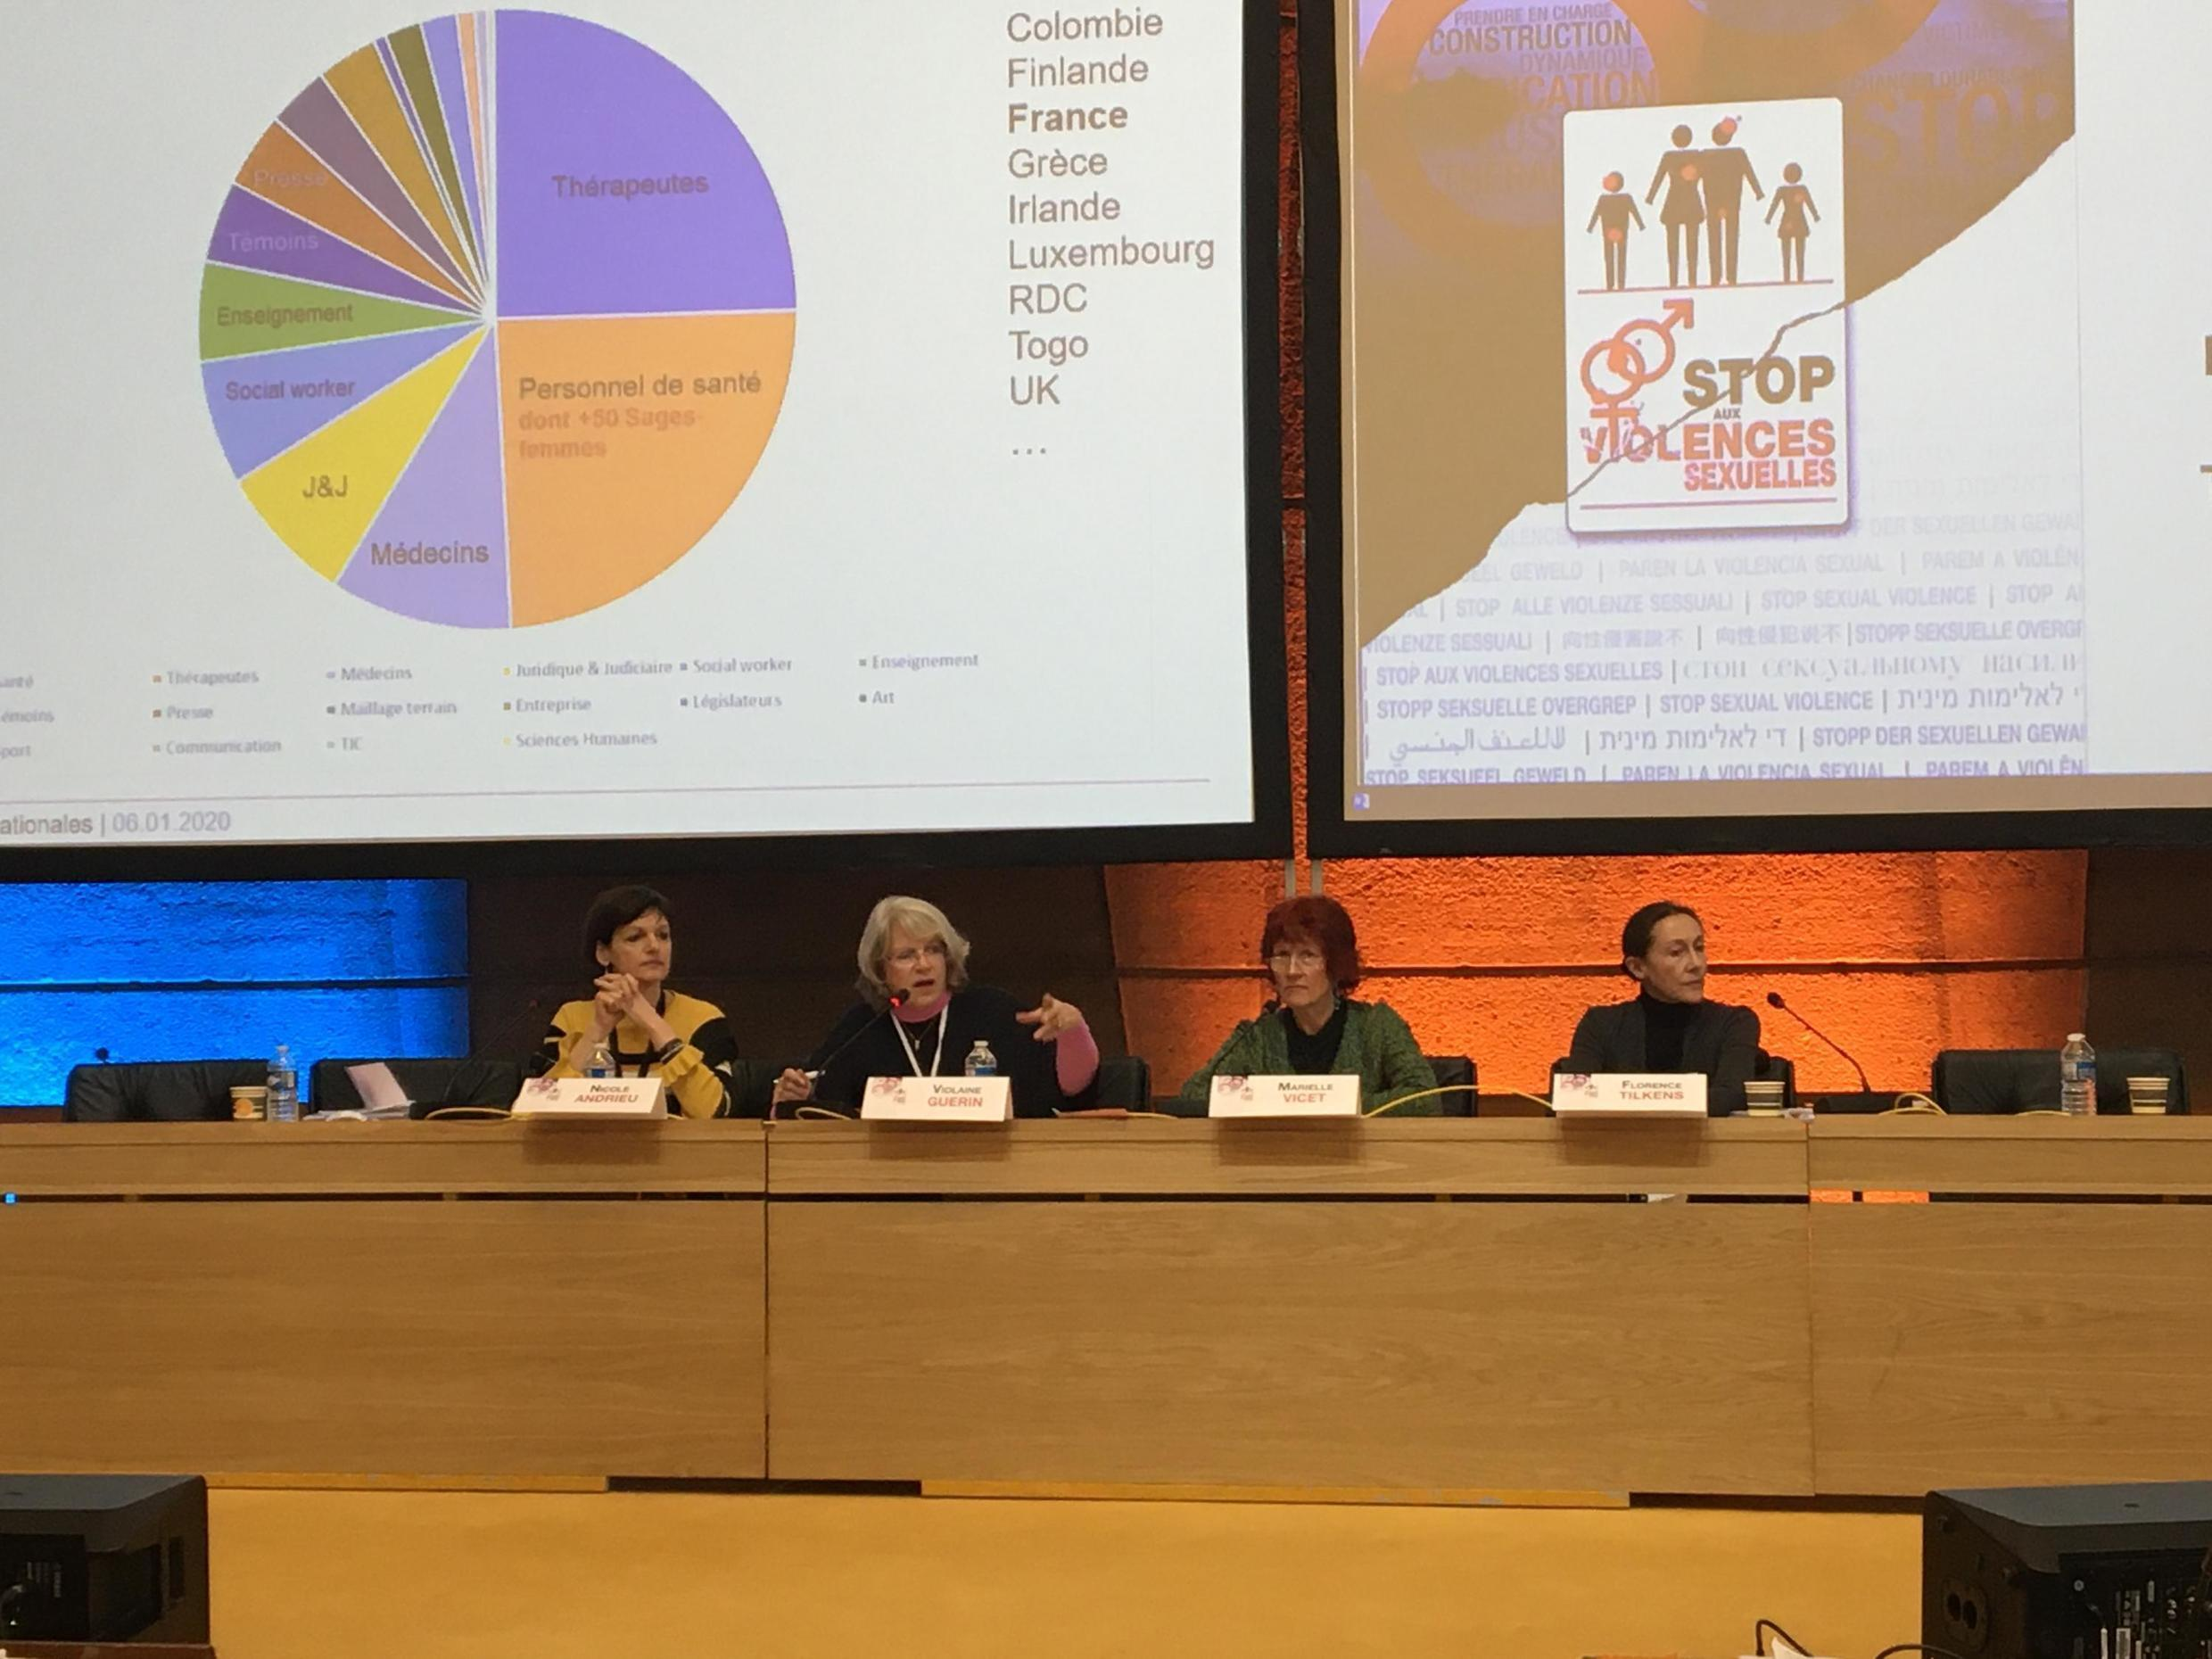 Doctors and health professionals gather for the seventh international conference on sexual violence at Paris' Unesco headquarters, 6 January 2020